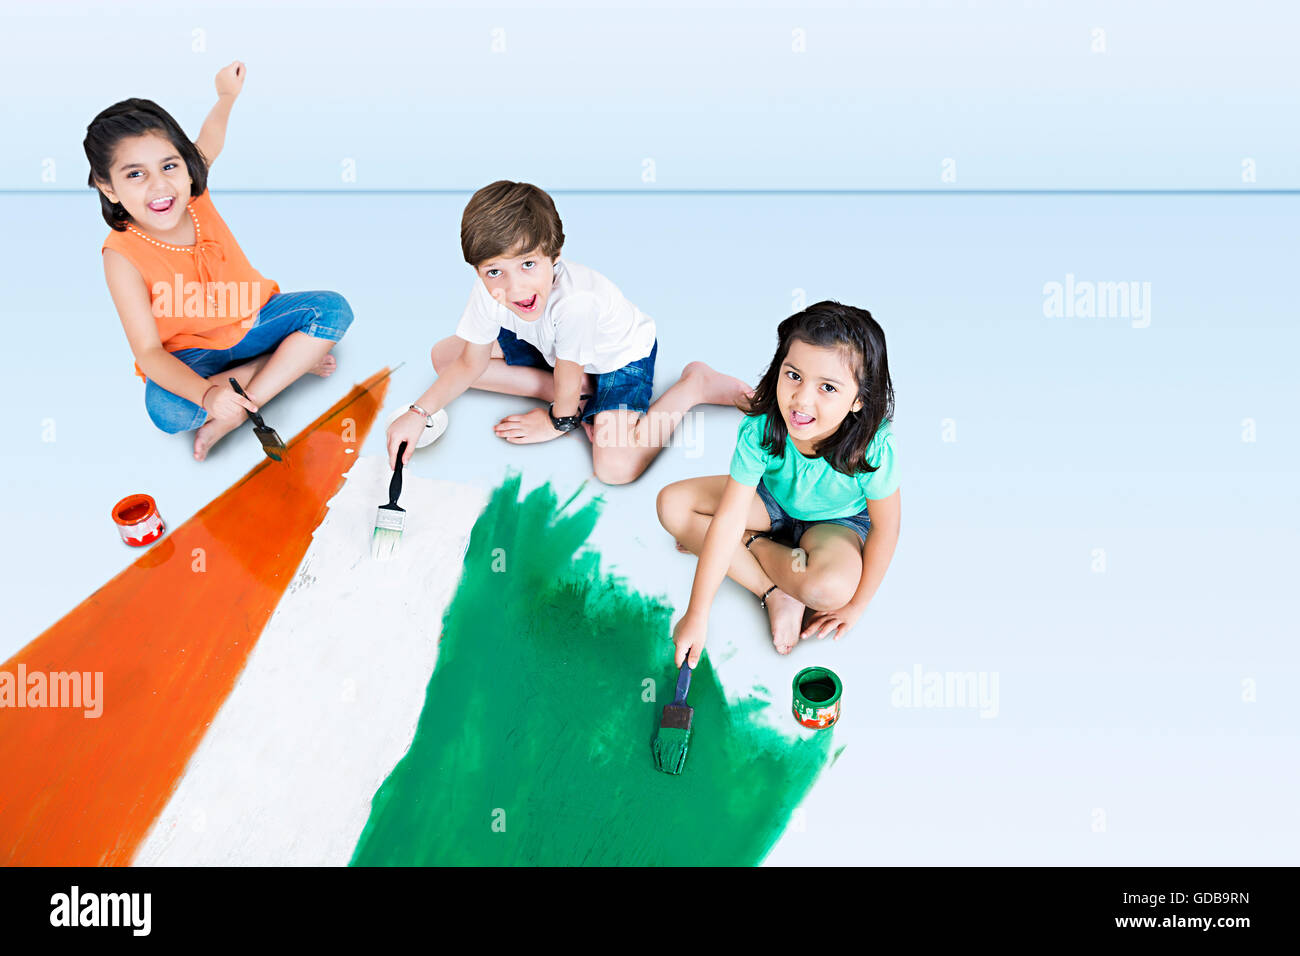 3 indians Kids friends Independence Day Flag Painting Stock Photo ...